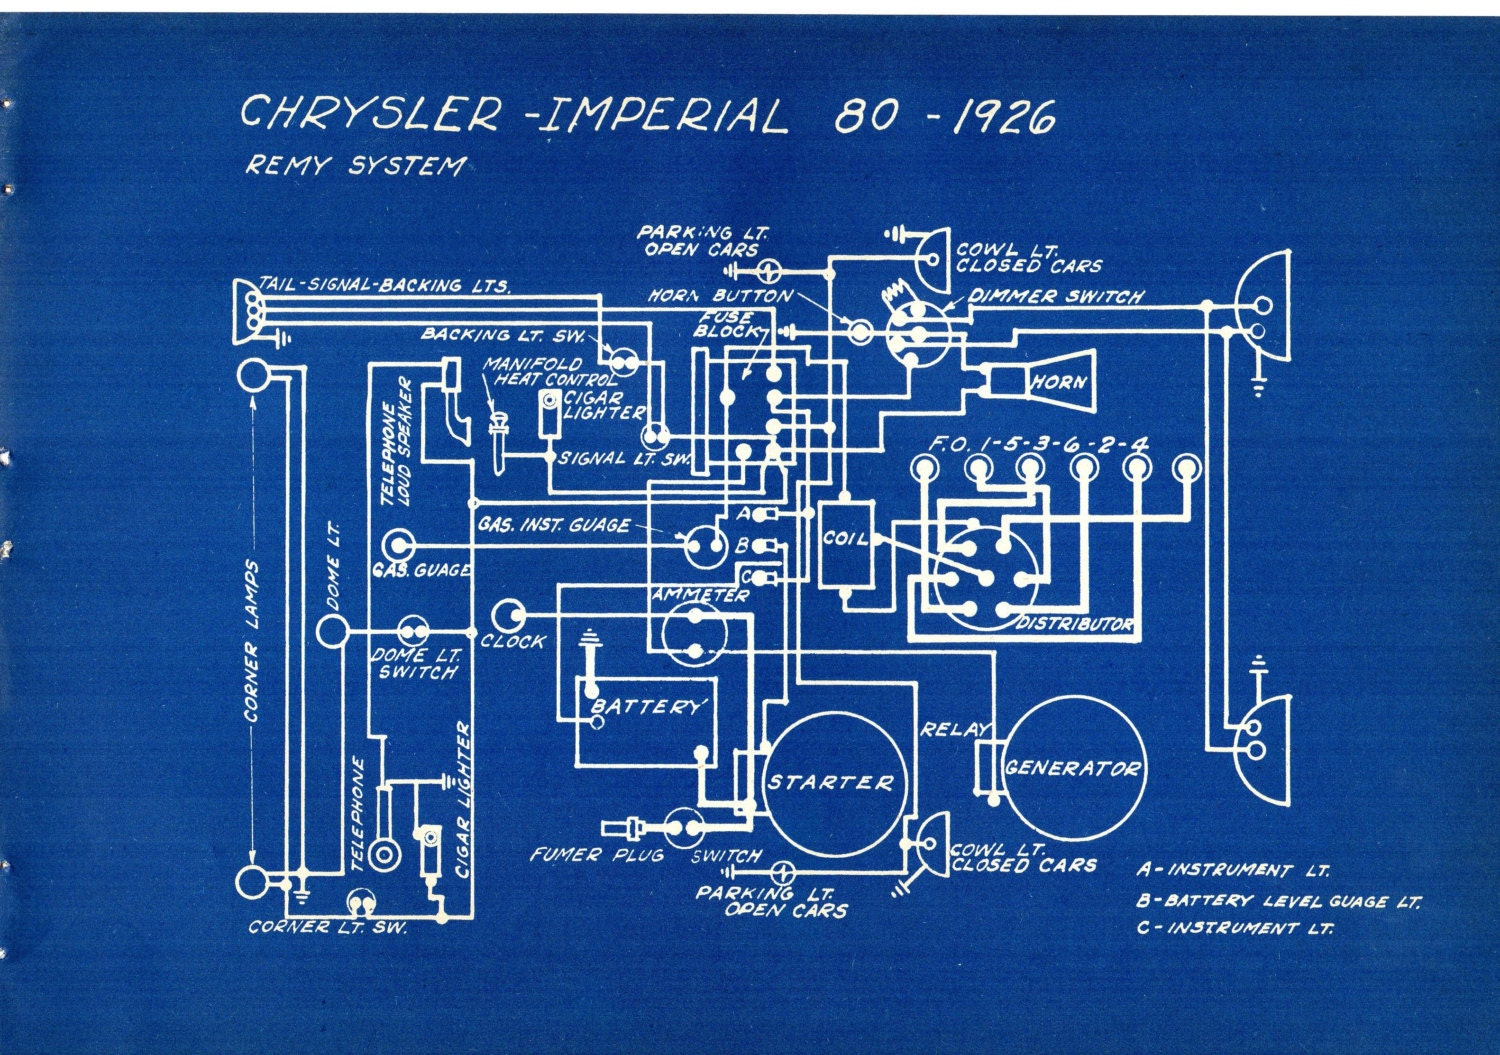 1927 Antique Blueprint Auto Car Chrysler Imperial Engineering Wiring ...